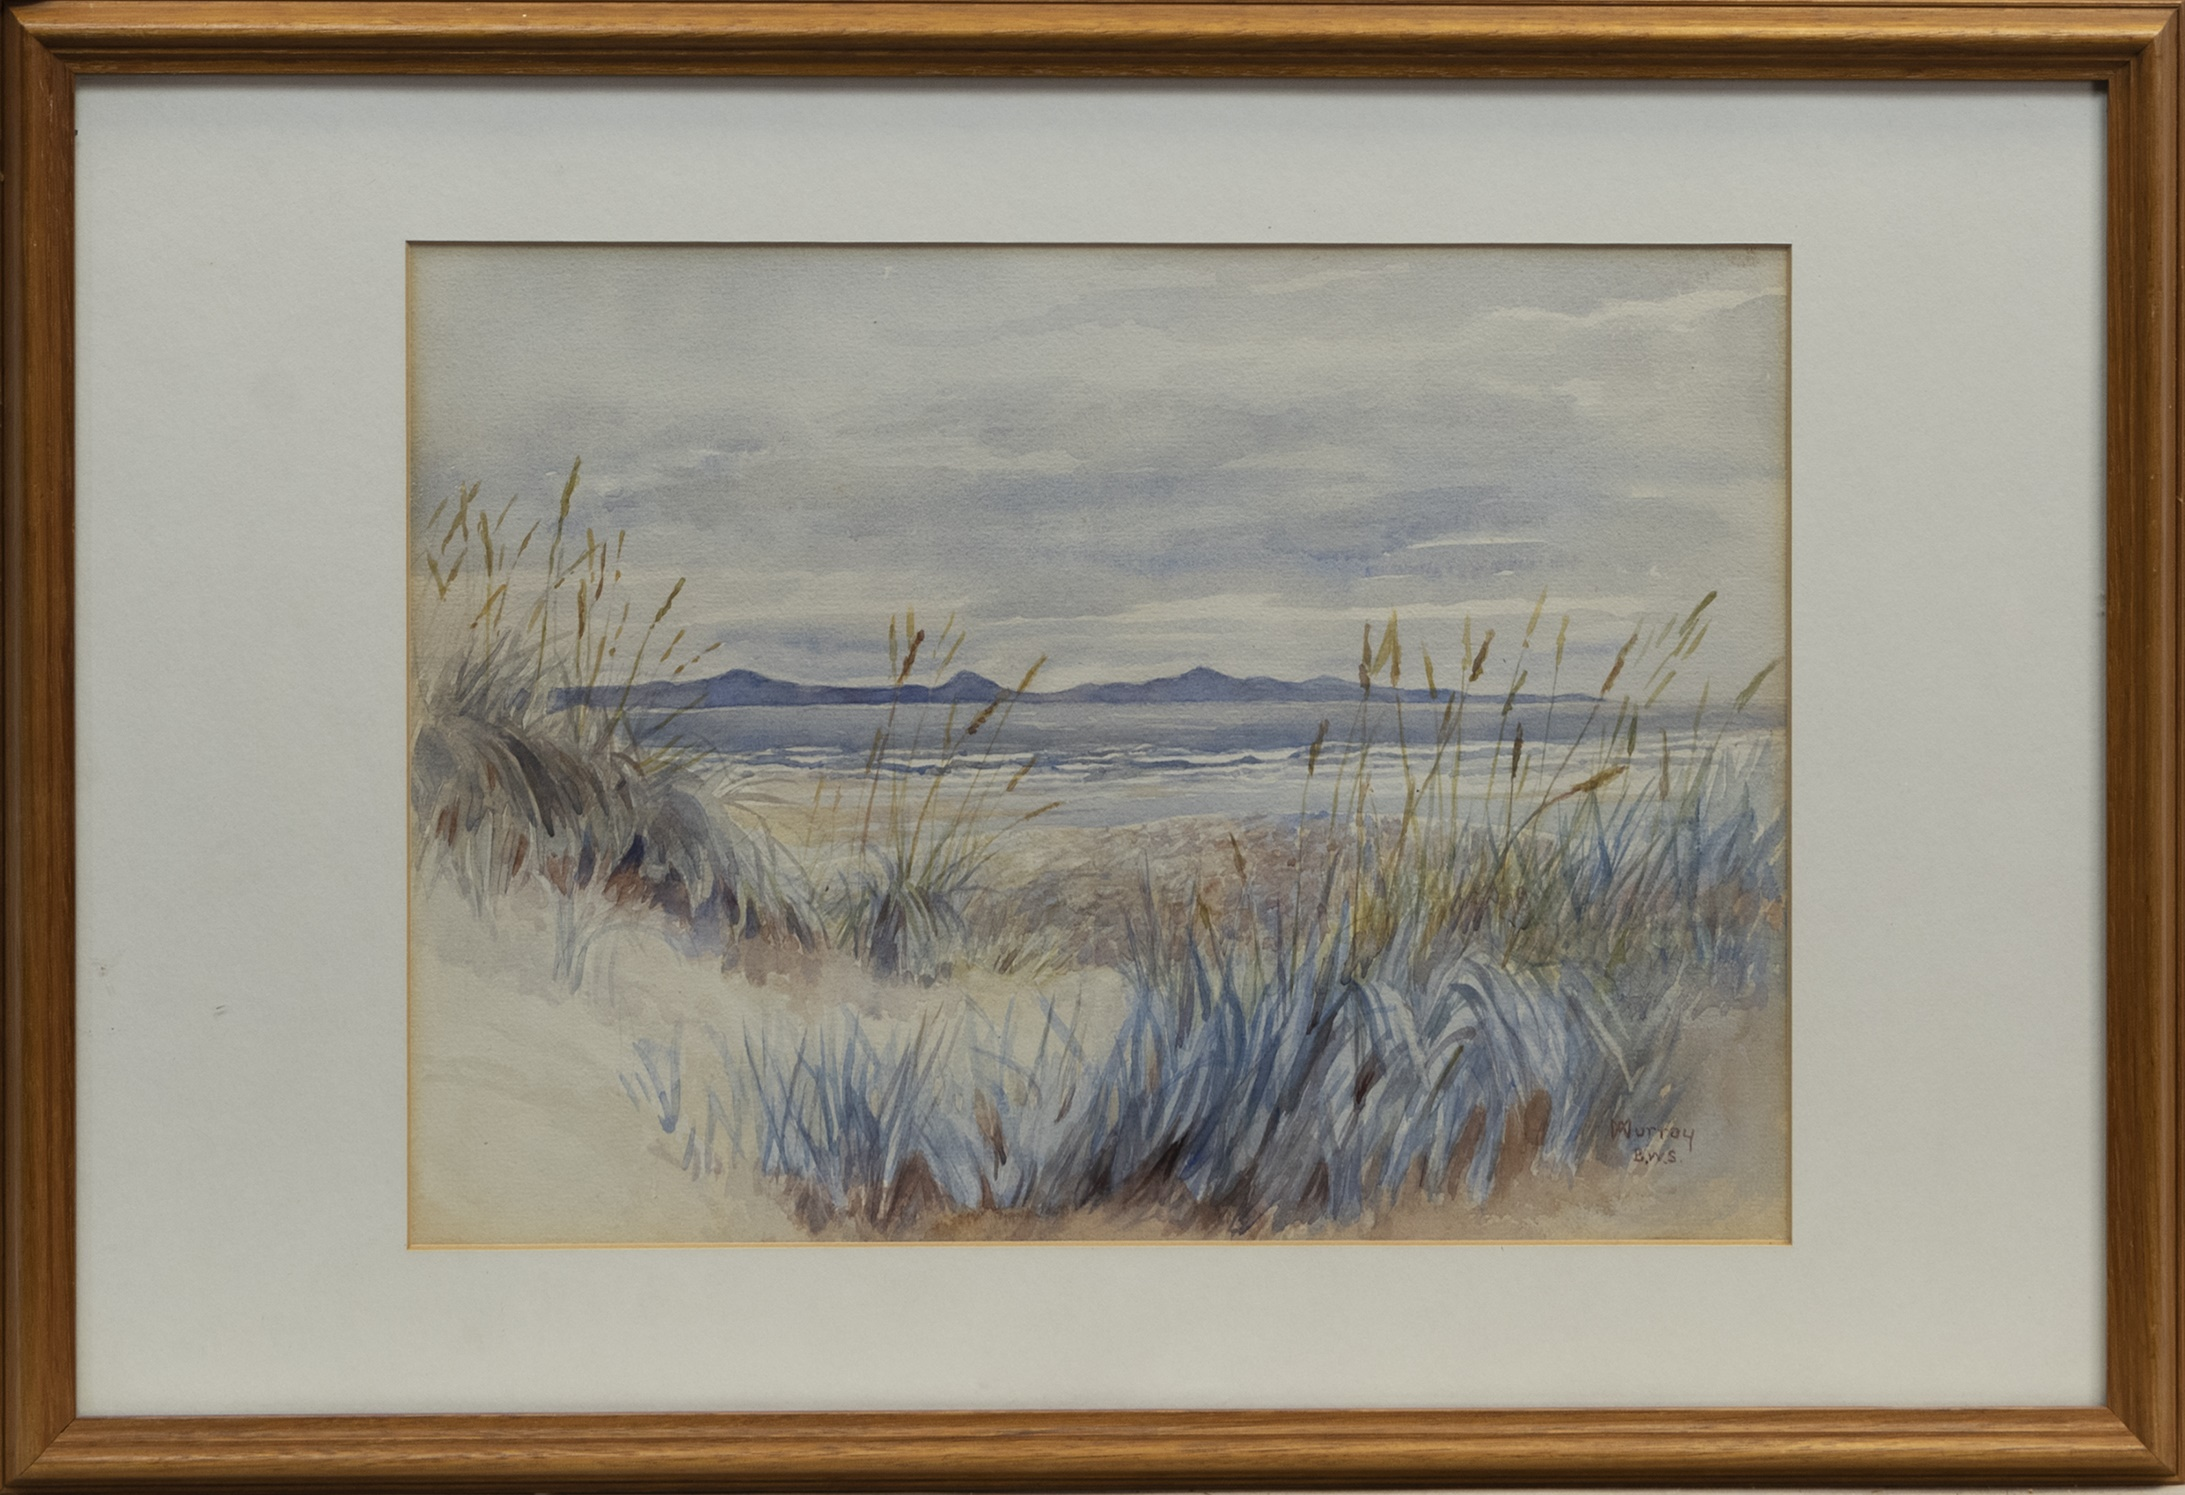 SAND DUNE, A WATERCOLOUR BY W MURRAY